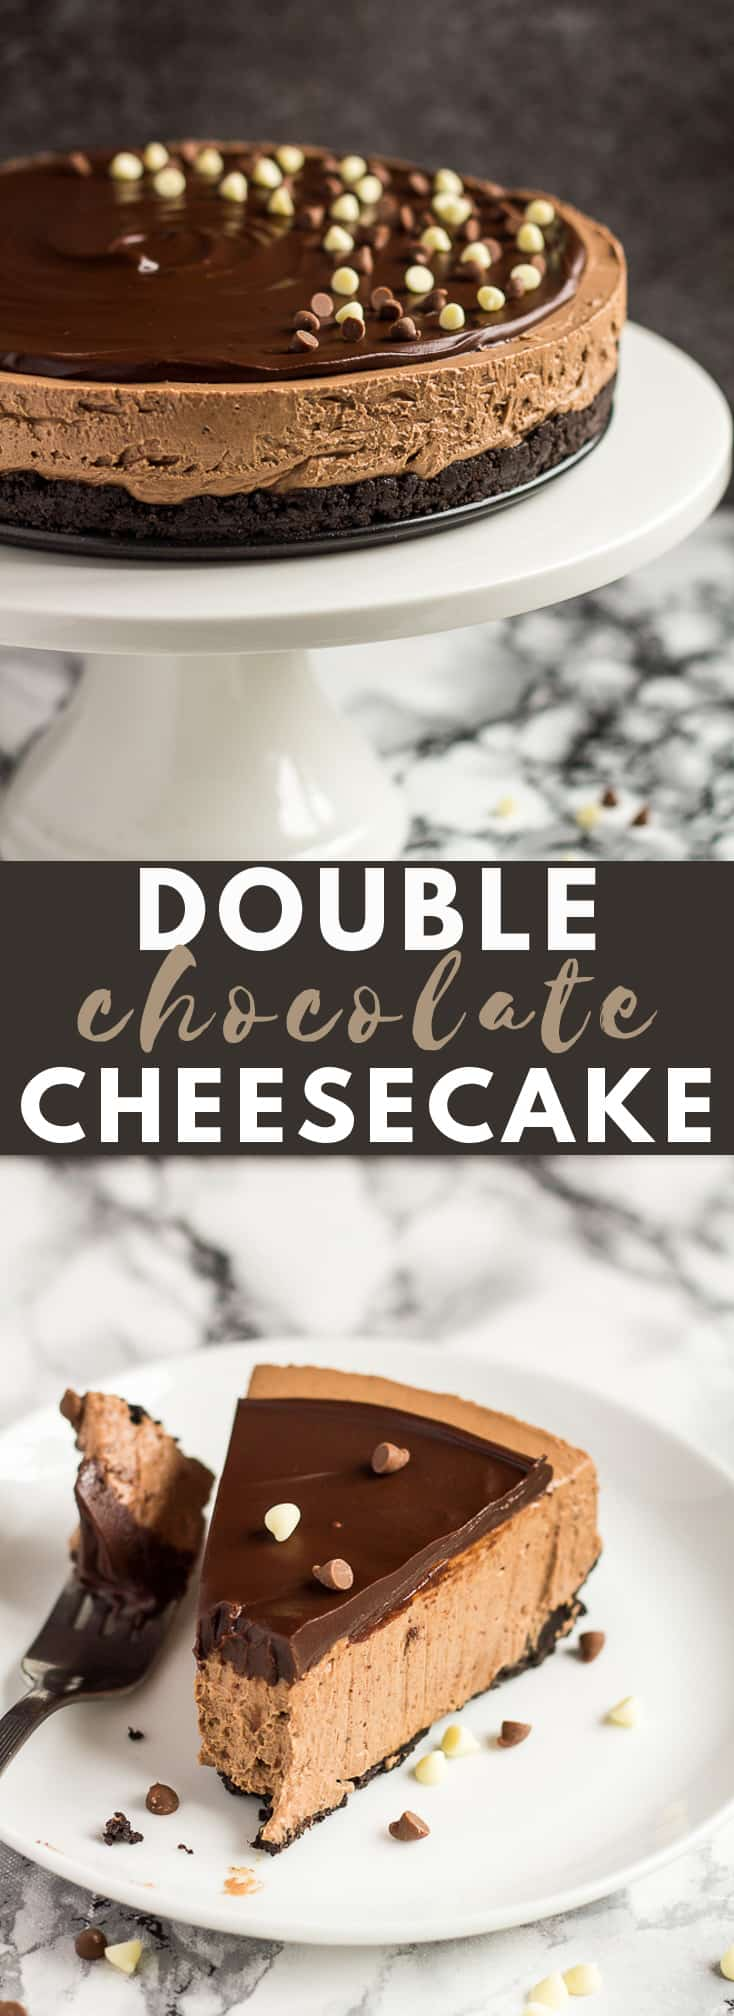 No-Bake Double Chocolate Cheesecake - Deliciously creamy NO-BAKE chocolate cheesecake recipe with an Oreo crust, and topped with chocolate ganache!